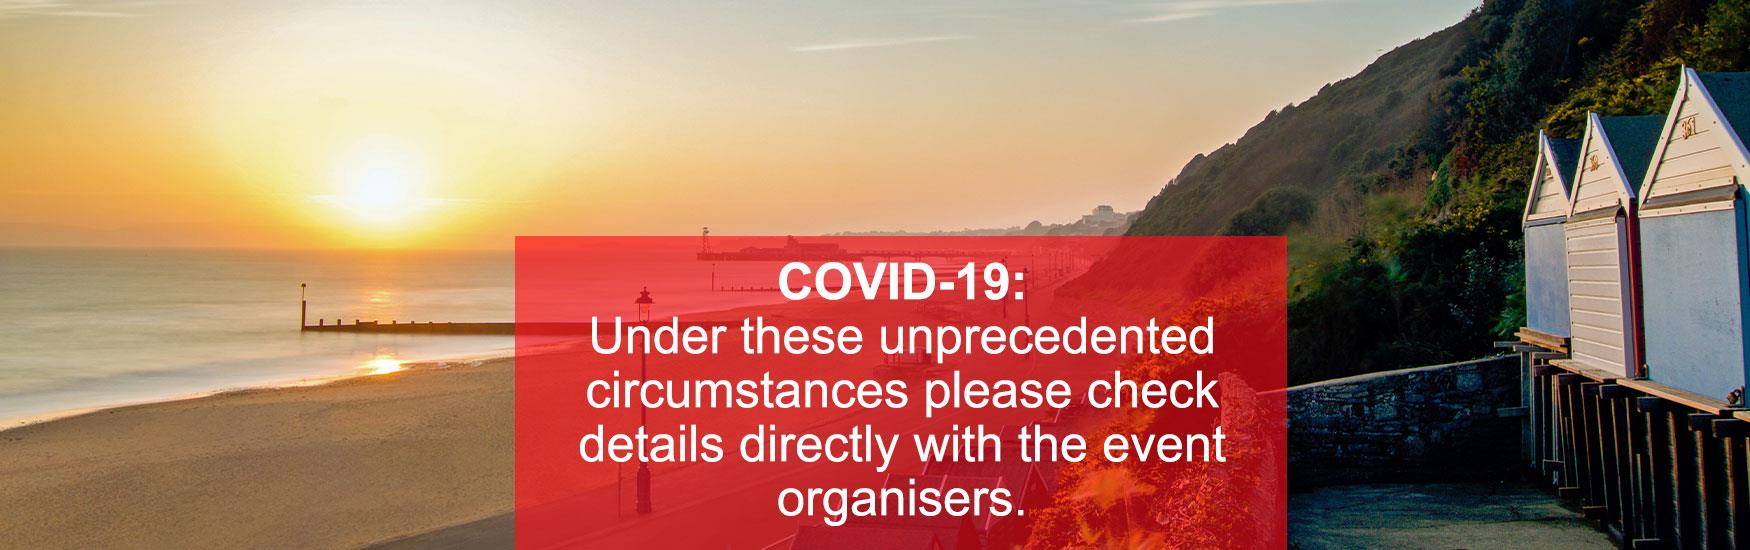 "Photo of Bournemouth Beach with text that reads ""COVID-19: Under these unprecedented circumstances please check details directly with the event organisers."""